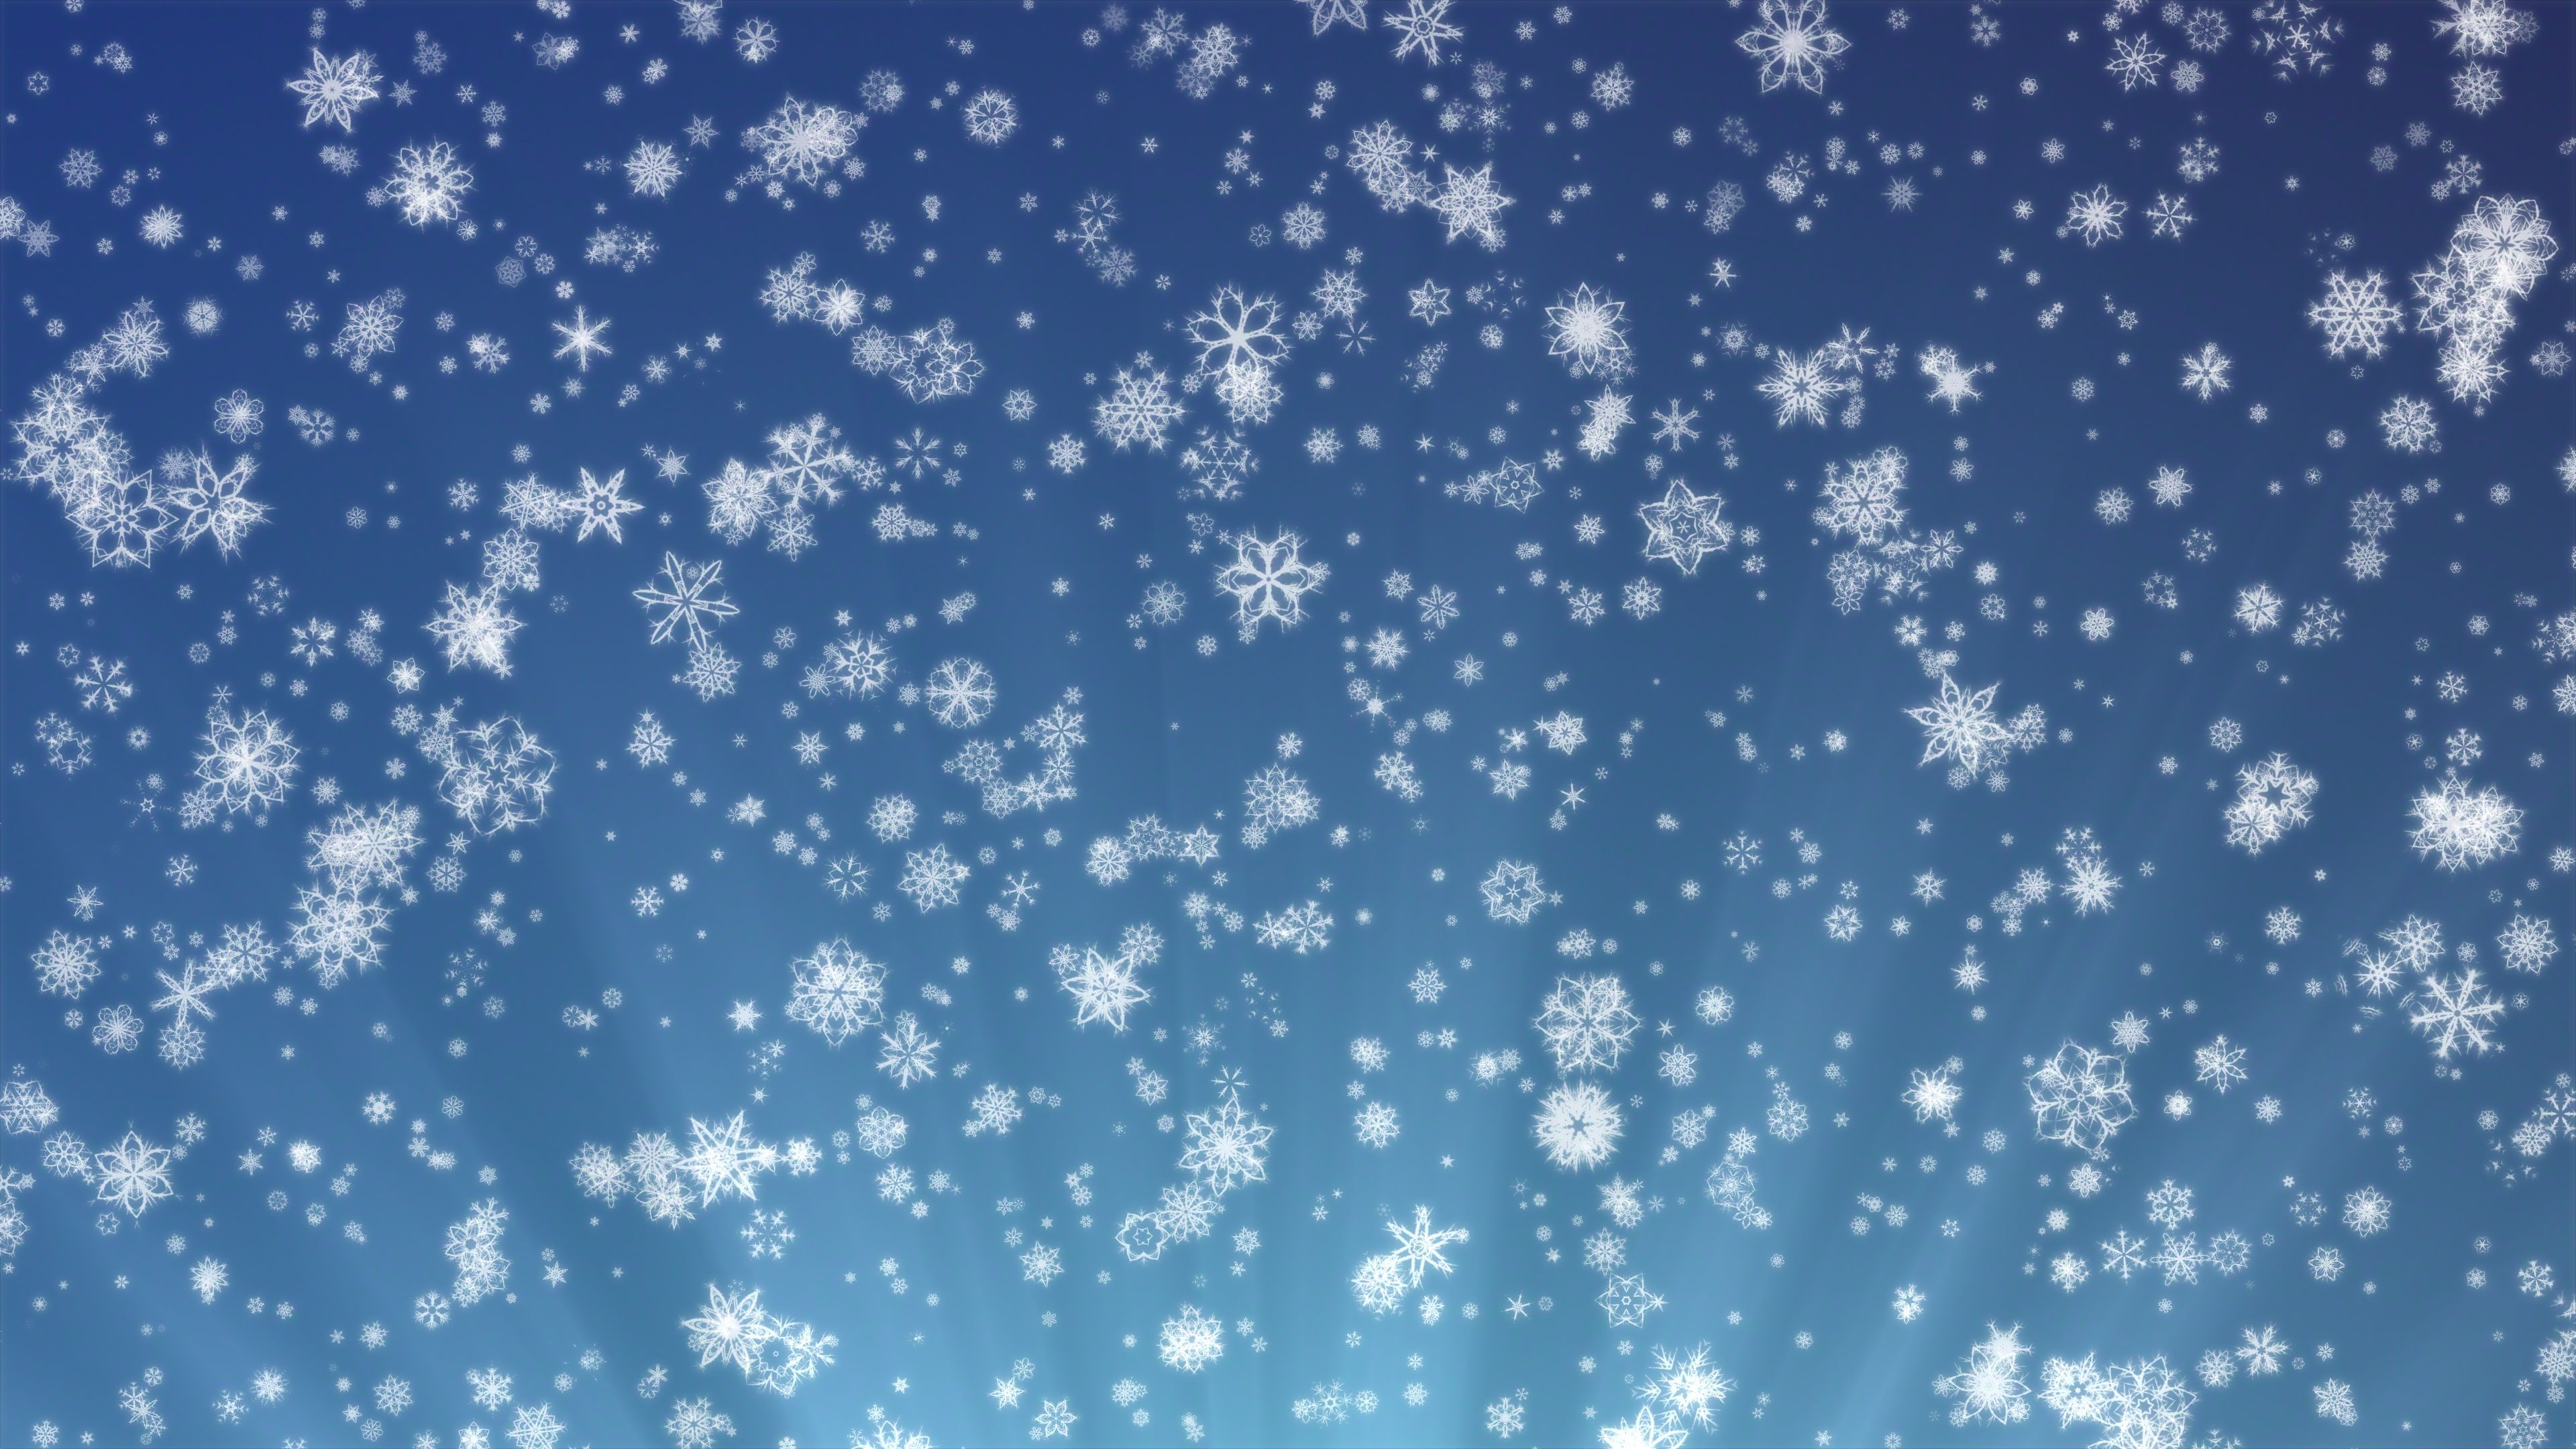 Falling Snow Live Wallpaper For Iphone Snowflakes Background 183 ① Download Free Cool Hd Wallpapers